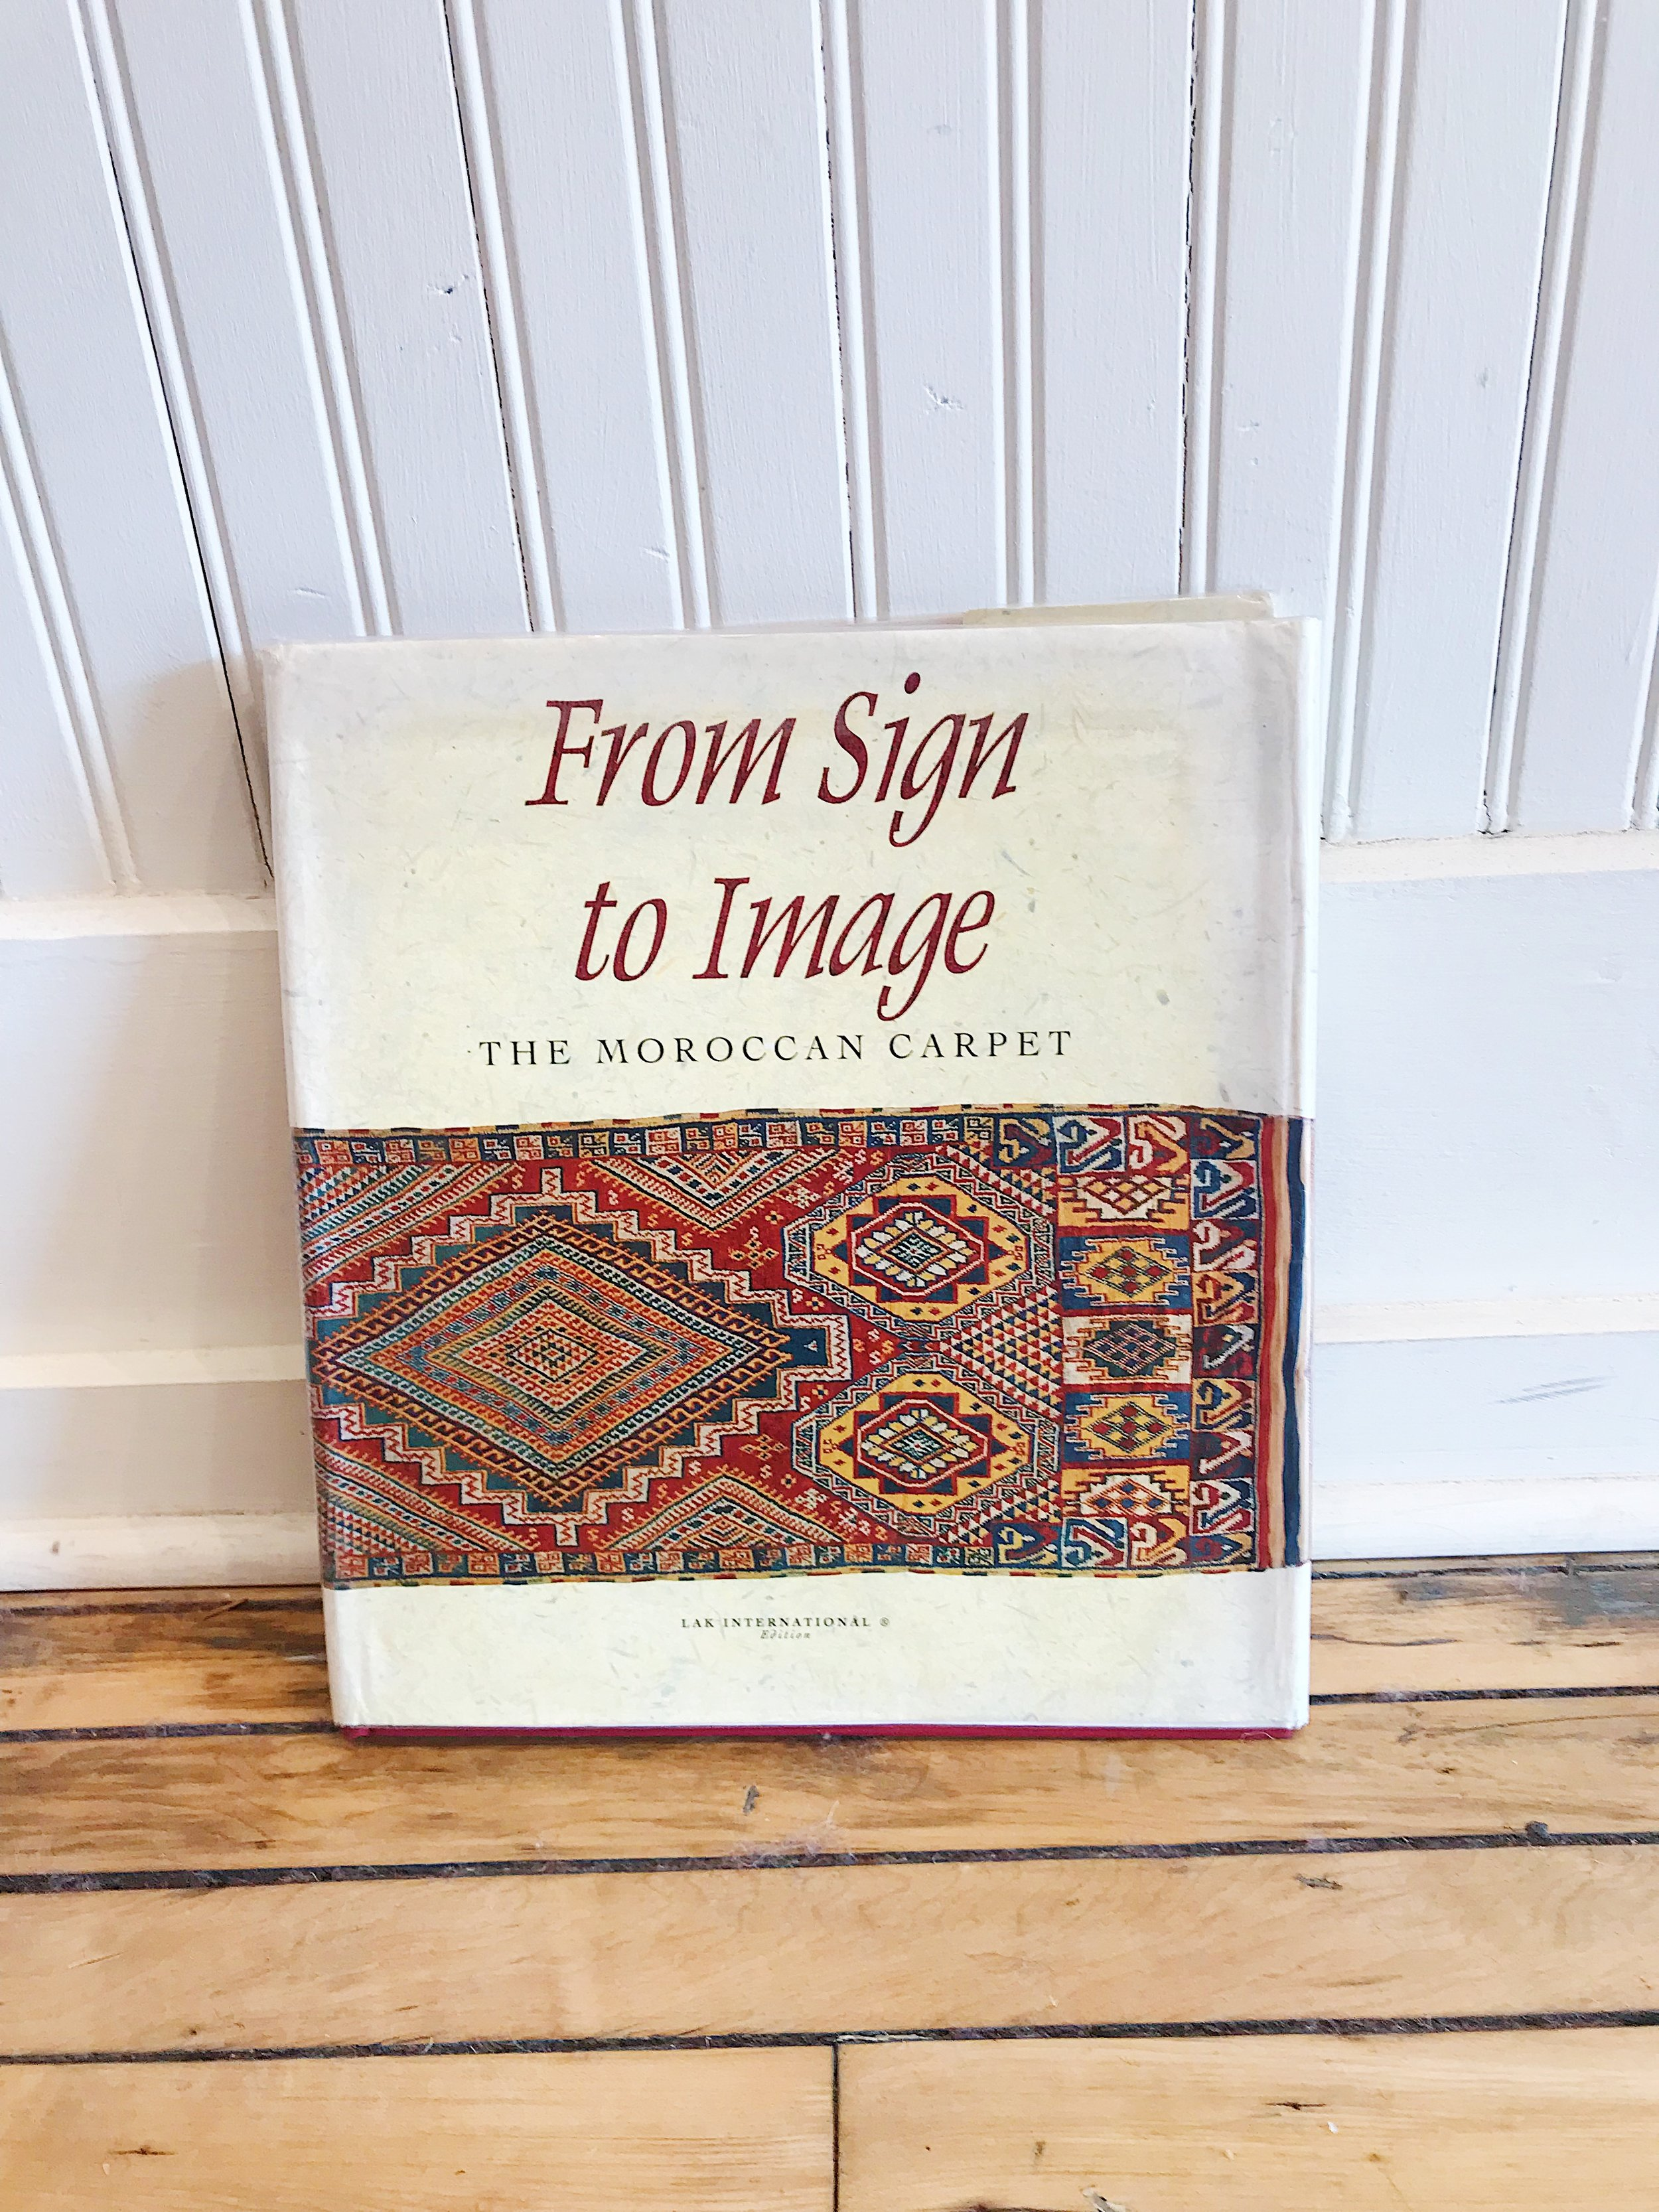 """""""From Sign to Image: The Moroccan Carpet,"""" by Abdelkebir Khatibi and Ali Amahan, 1994"""